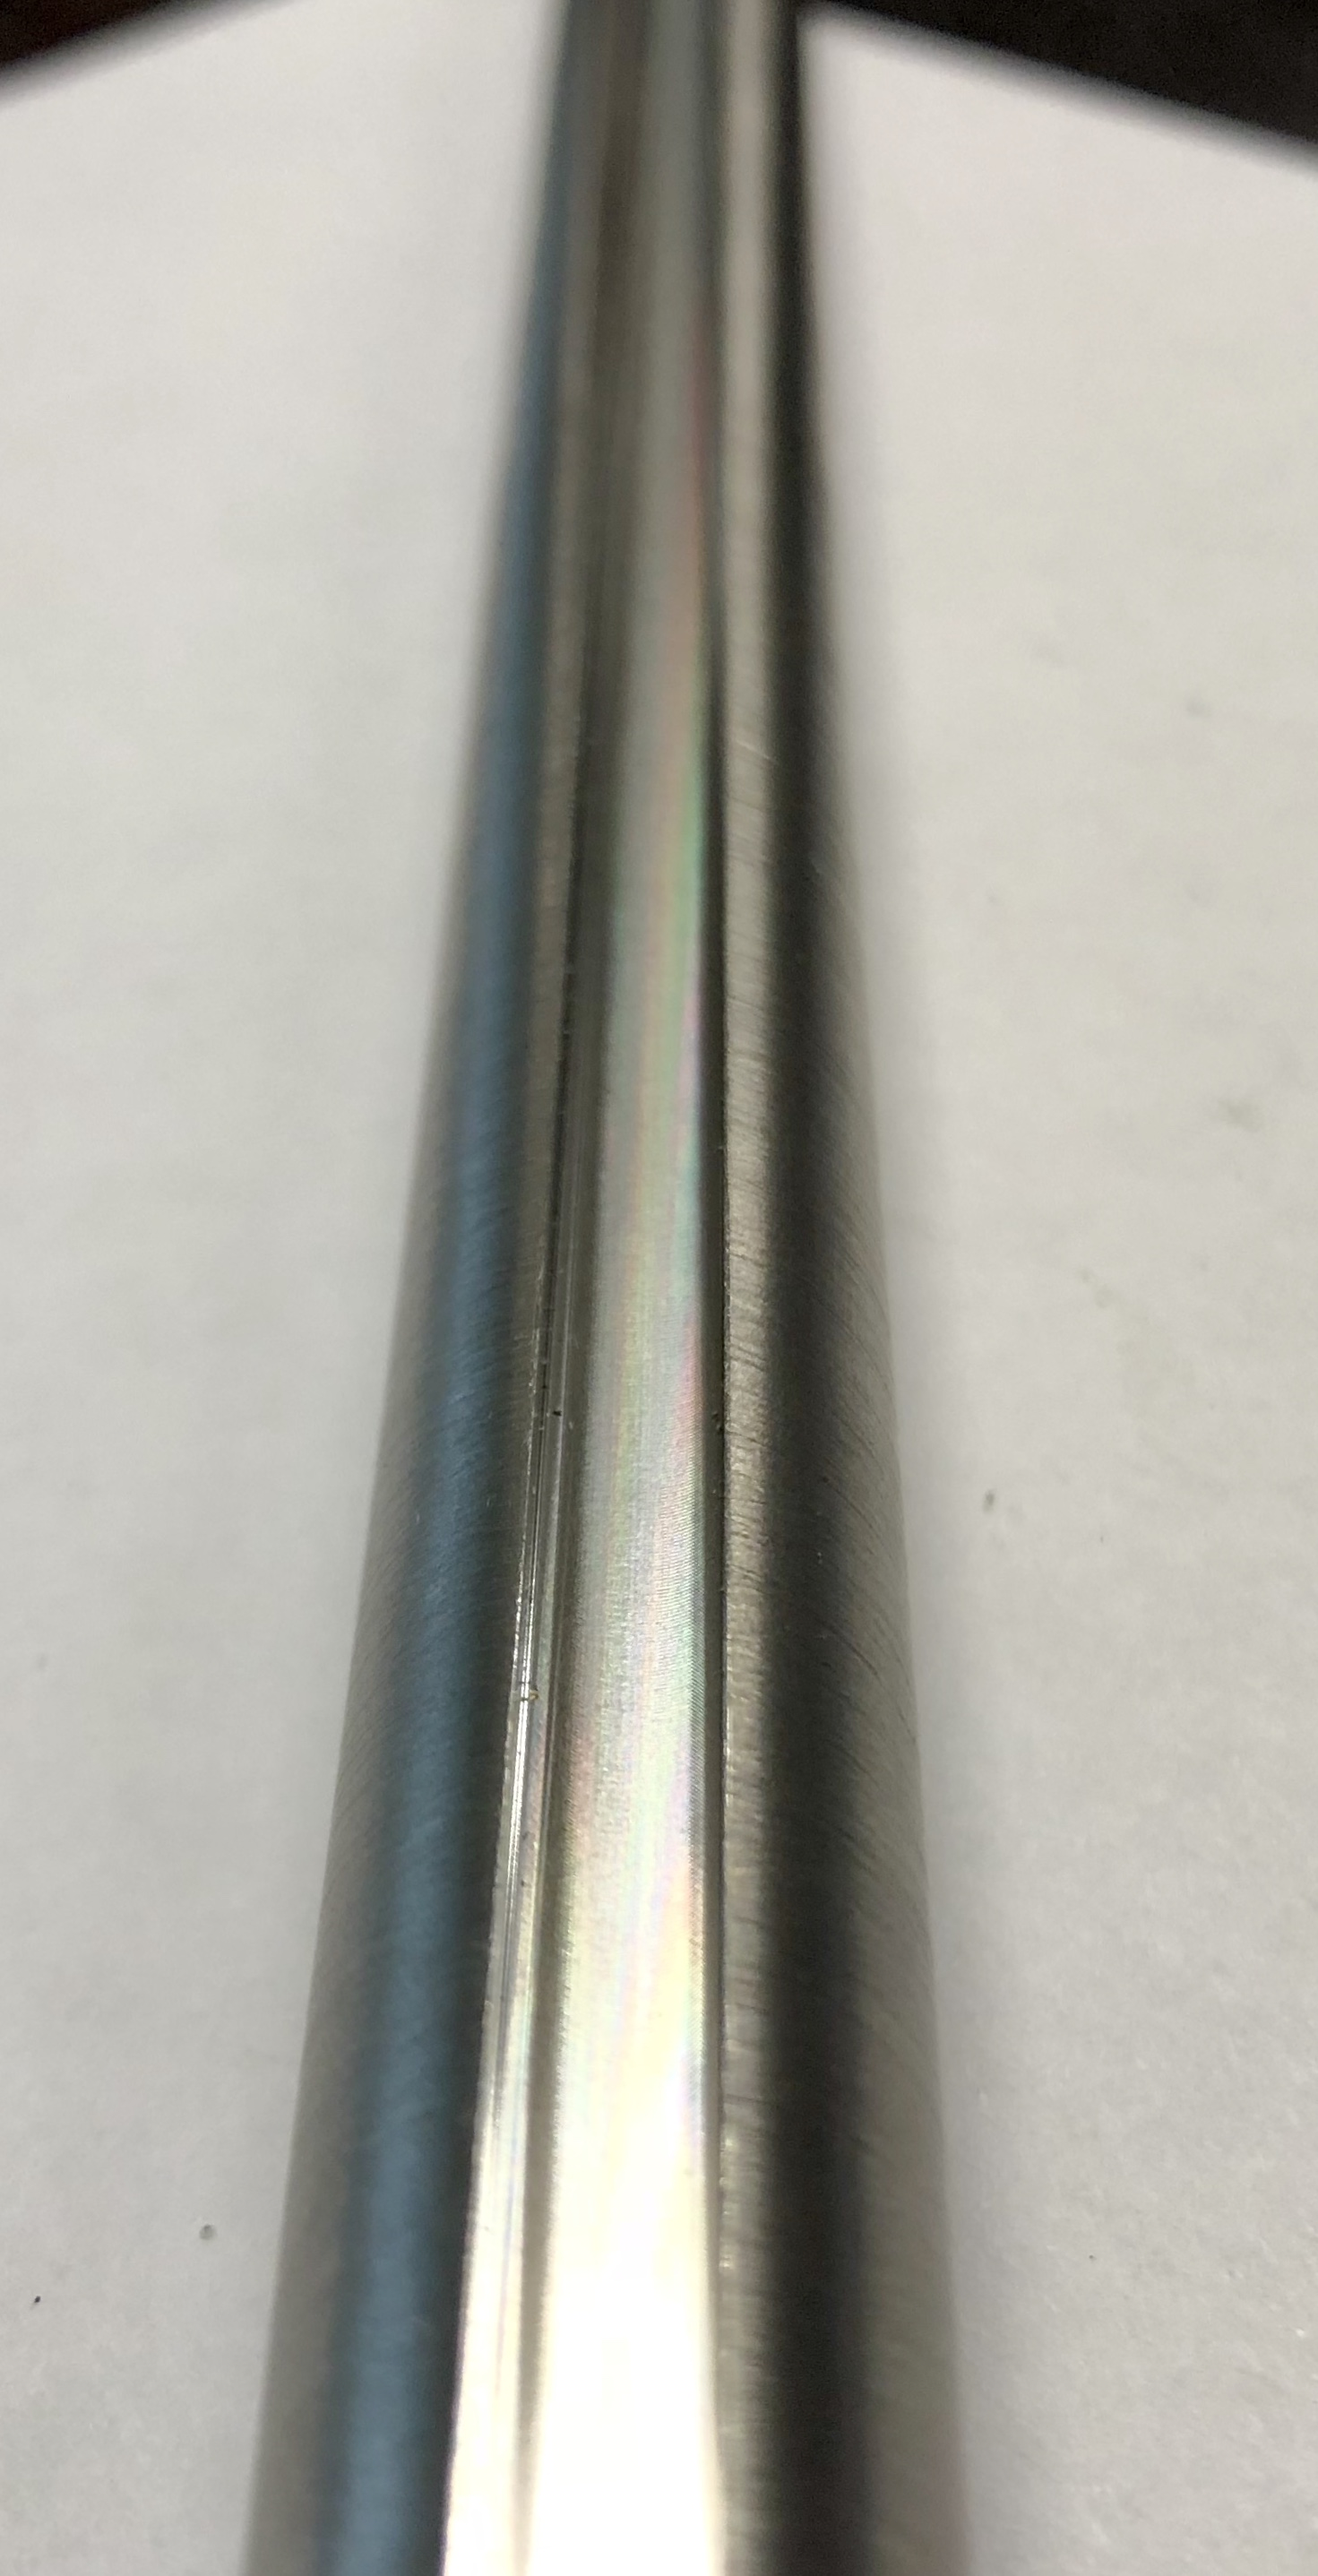 Keyed 15mm shaft